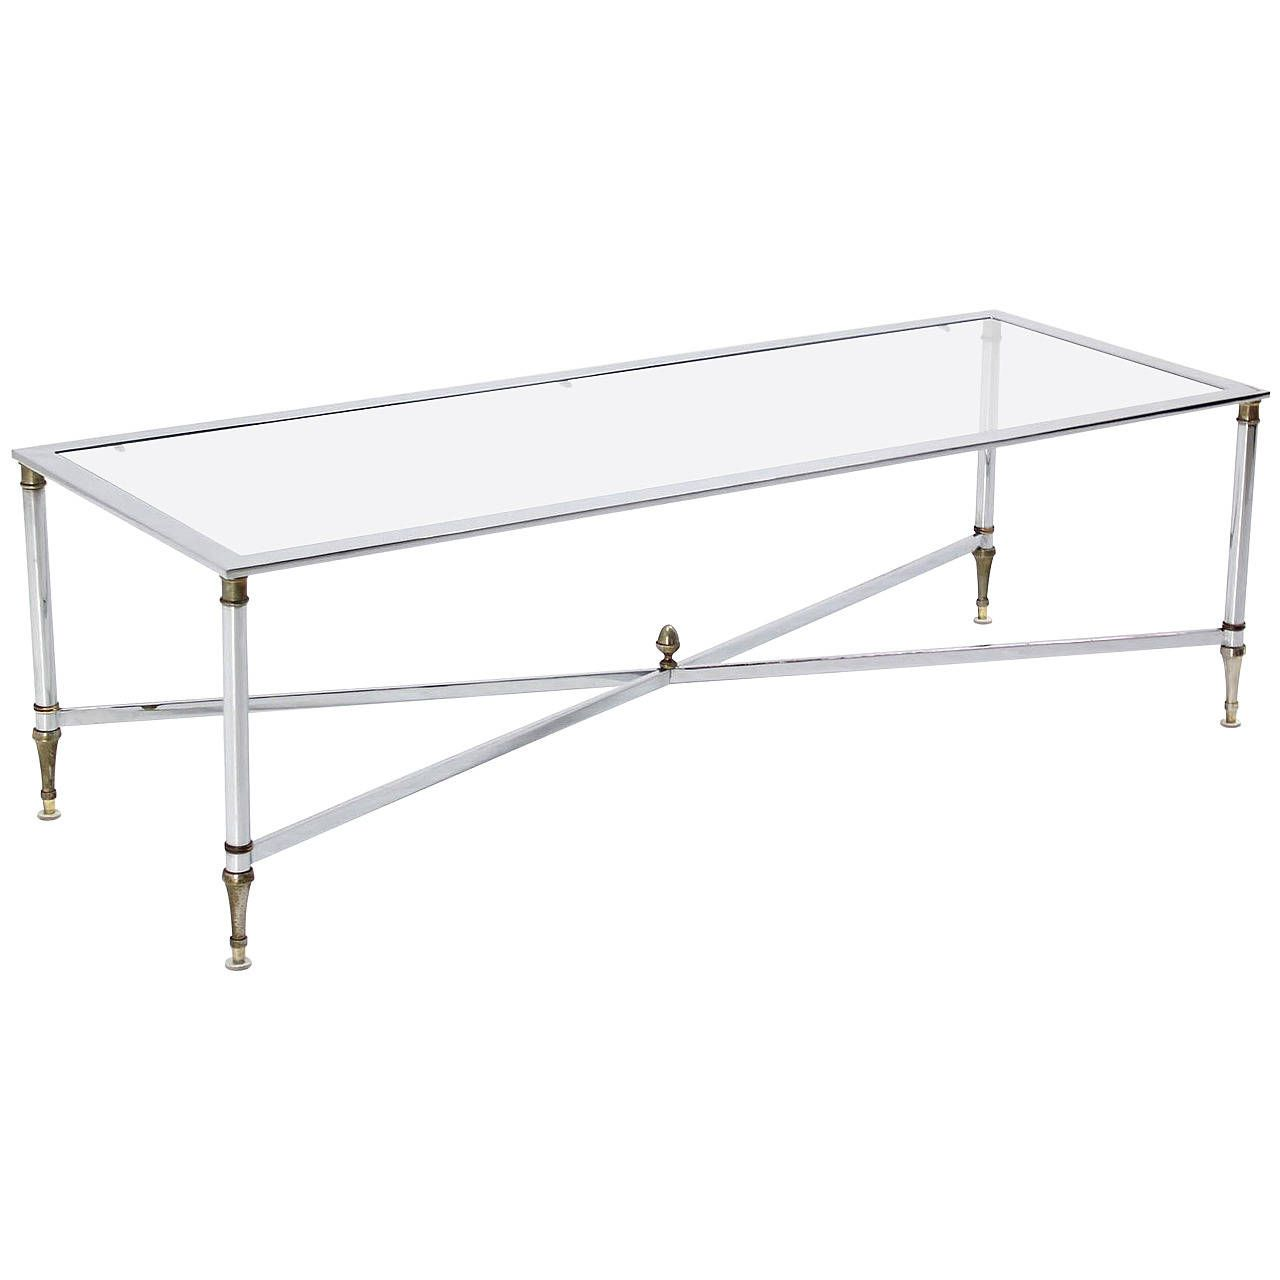 Chrome Brass X Base Glass Top Long Rectangle Coffee Table Chrome - Chrome base glass top coffee table